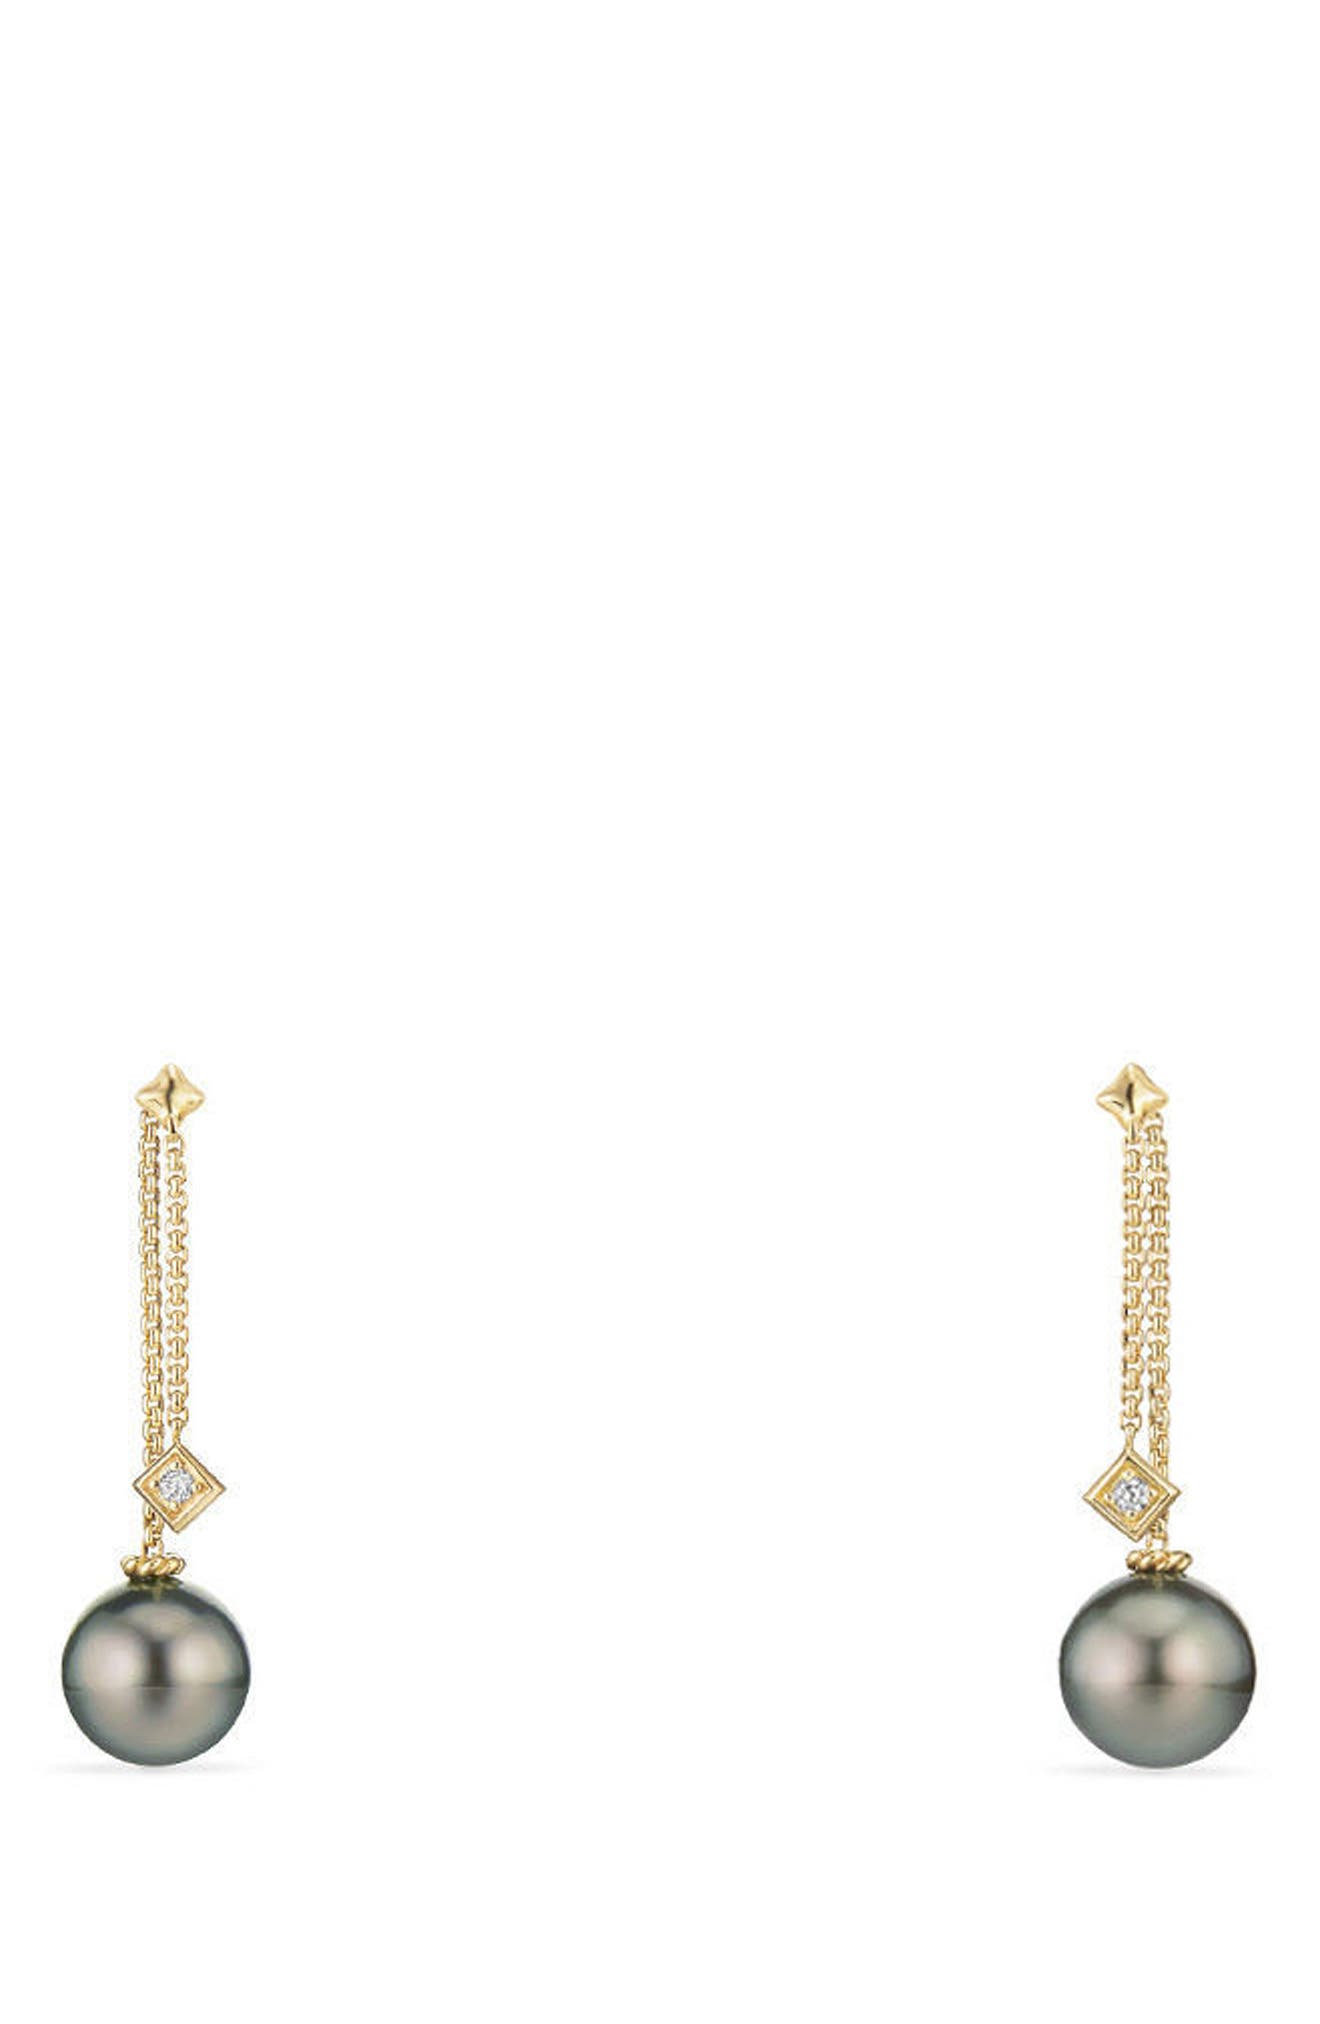 David Yurman Solari Earrings with Diamonds in 18K Gold